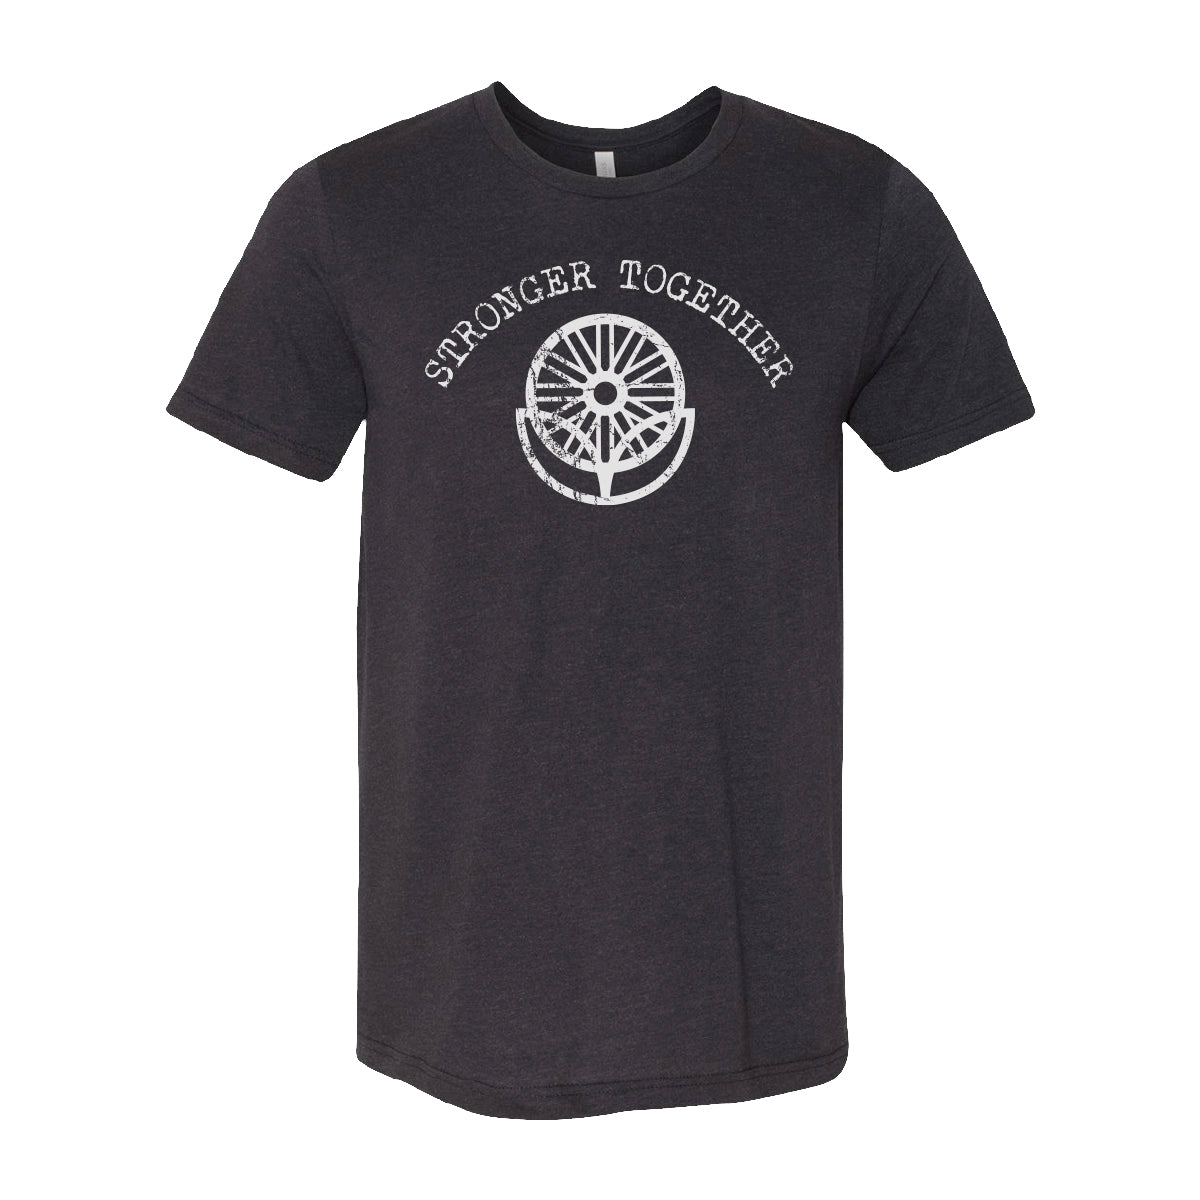 LifeCYCLE - STRONGER TOGETHER TEE - Black Heather Triblend